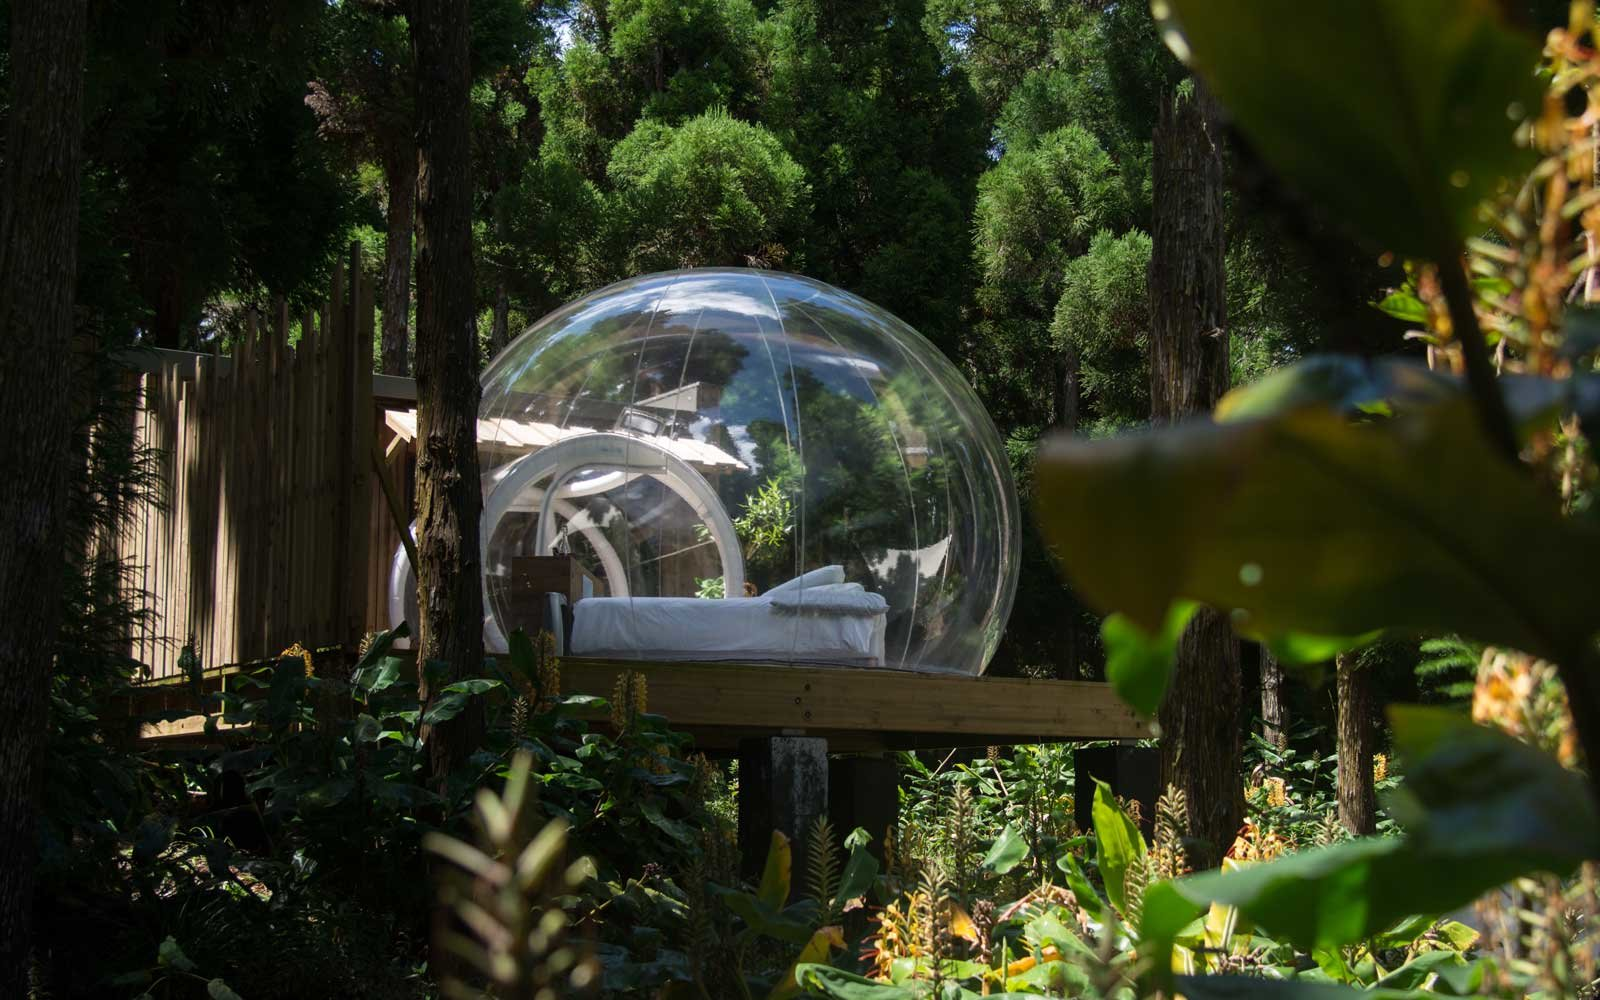 Reunion Island You Can Sleep In A Bubble Surrounded By Forest On One Of The Most